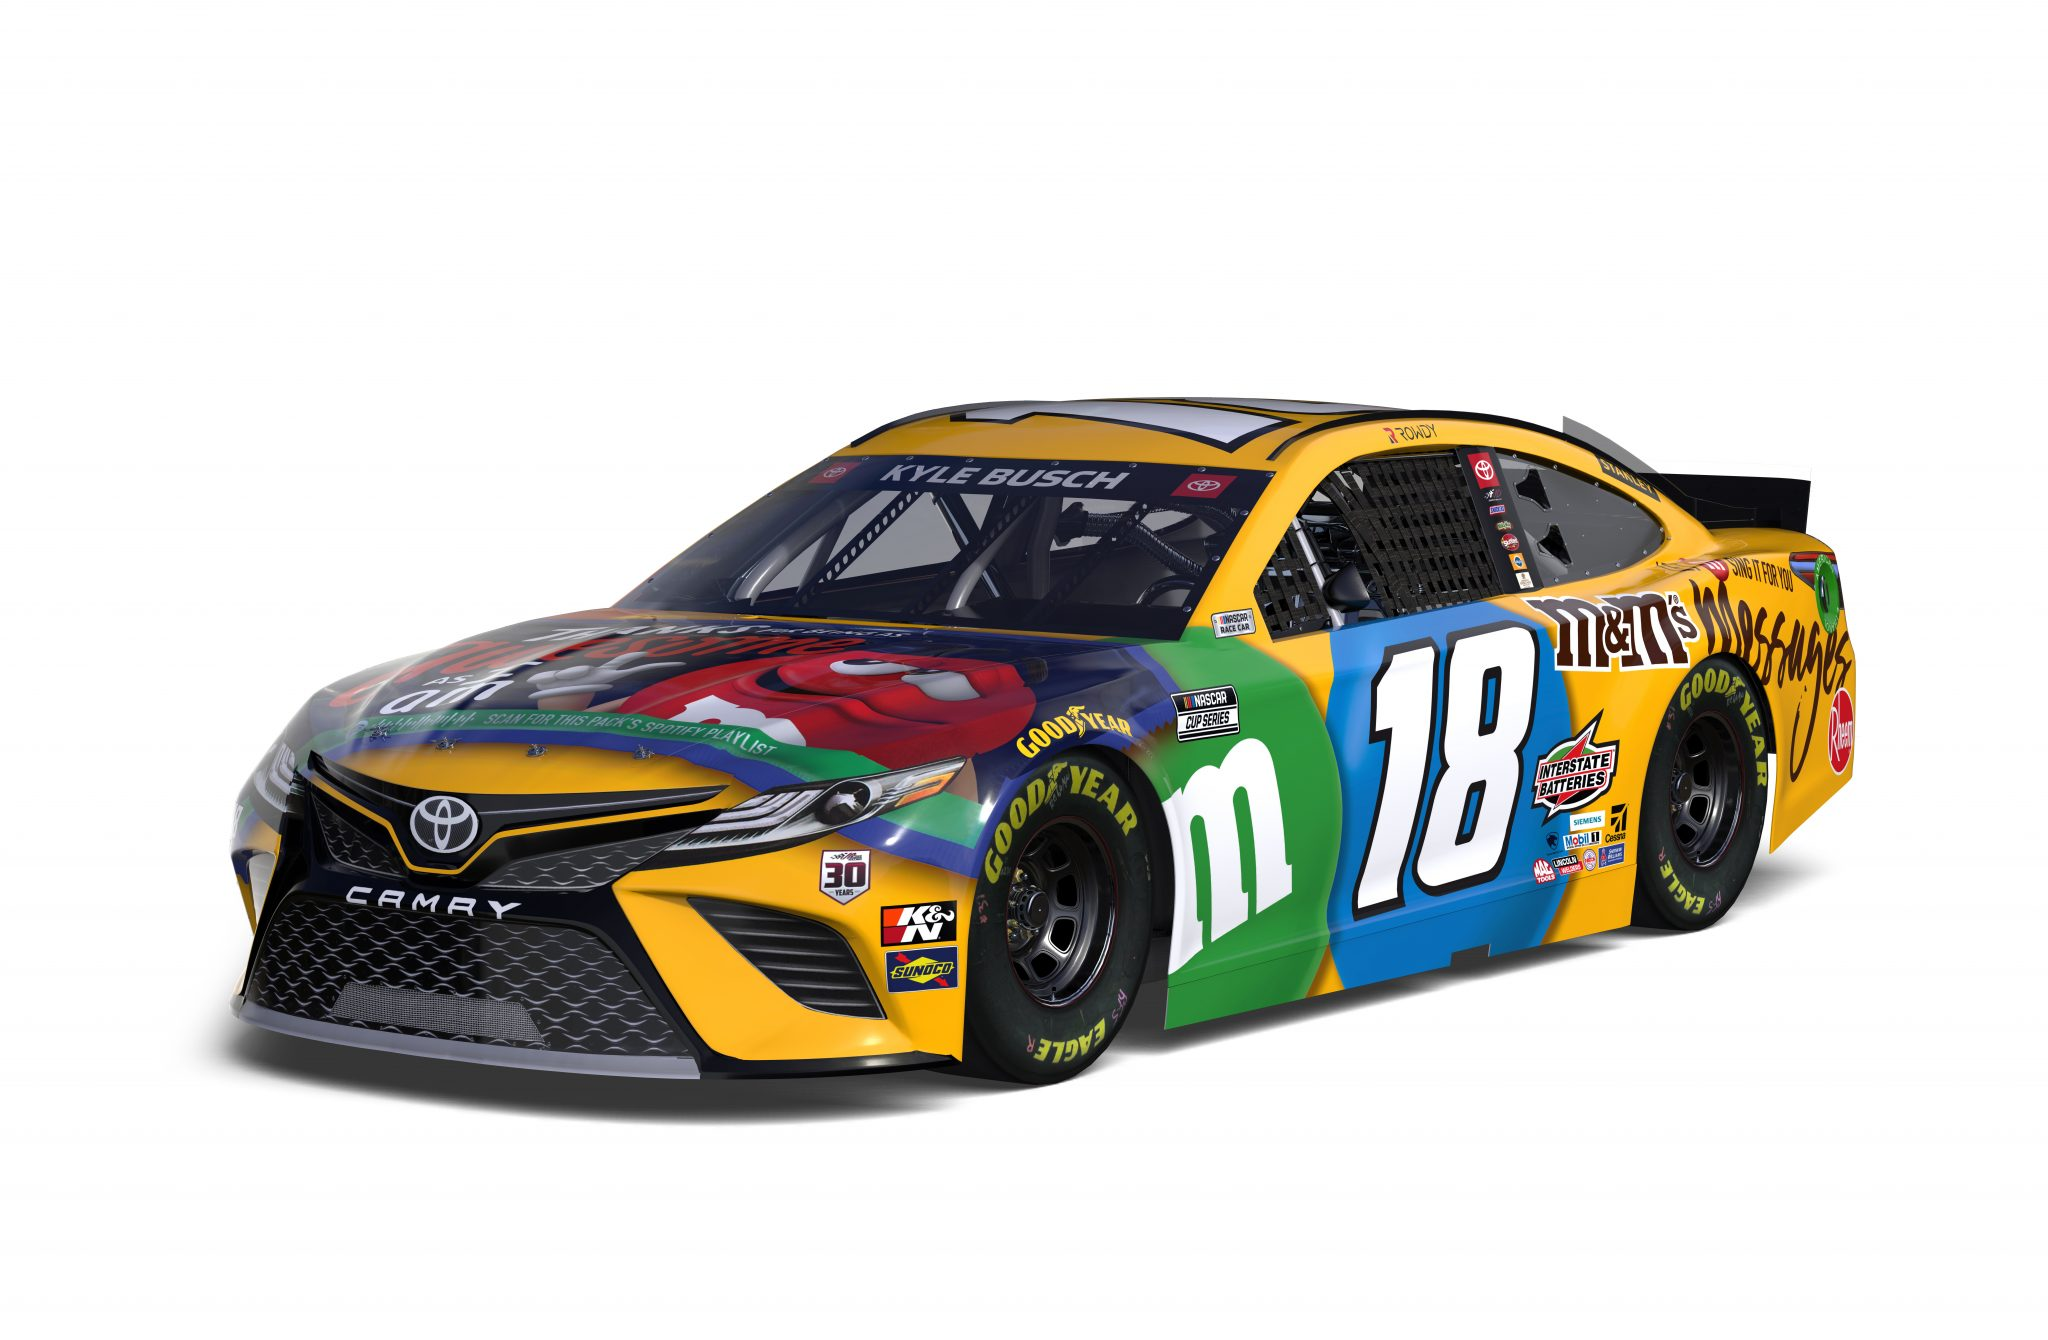 2021 Kyle Busch M&m Messages Camry Angle 3